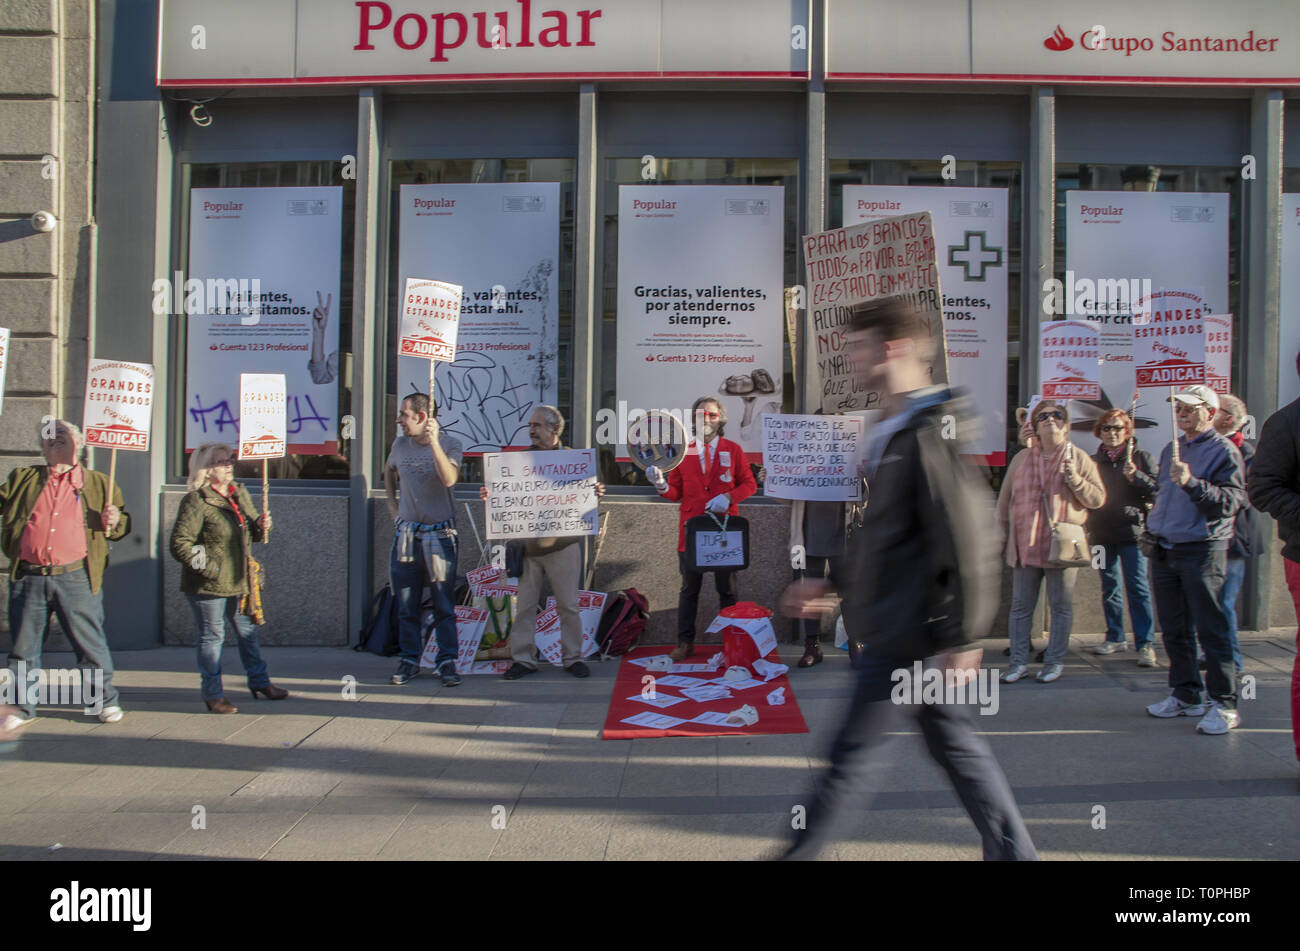 March 21, 2019 - Madrid, Madrid, Spain - Protesters are seen holding placards in font of the bank during the demonstration..Scammed shareholders protested in front of the Banco Popular bank part of Santander Group in Madrid. Some 300,000 shareholders have been left with no money in their accounts. (Credit Image: © Lora Grigorova/SOPA Images via ZUMA Wire) - Stock Image